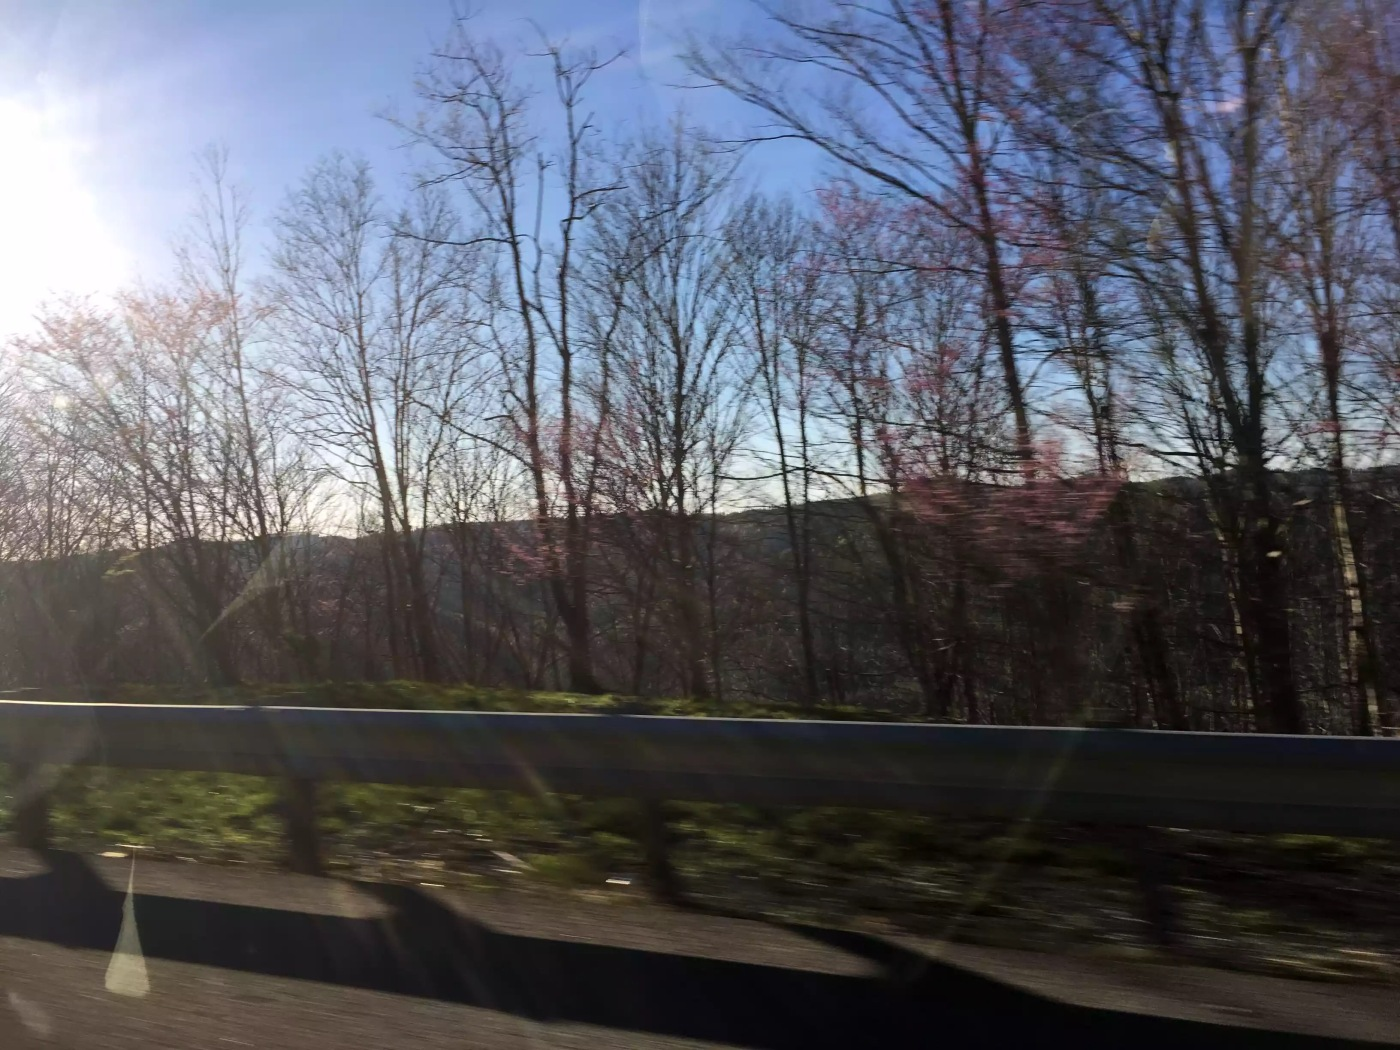 Photo of trees and mountains from car